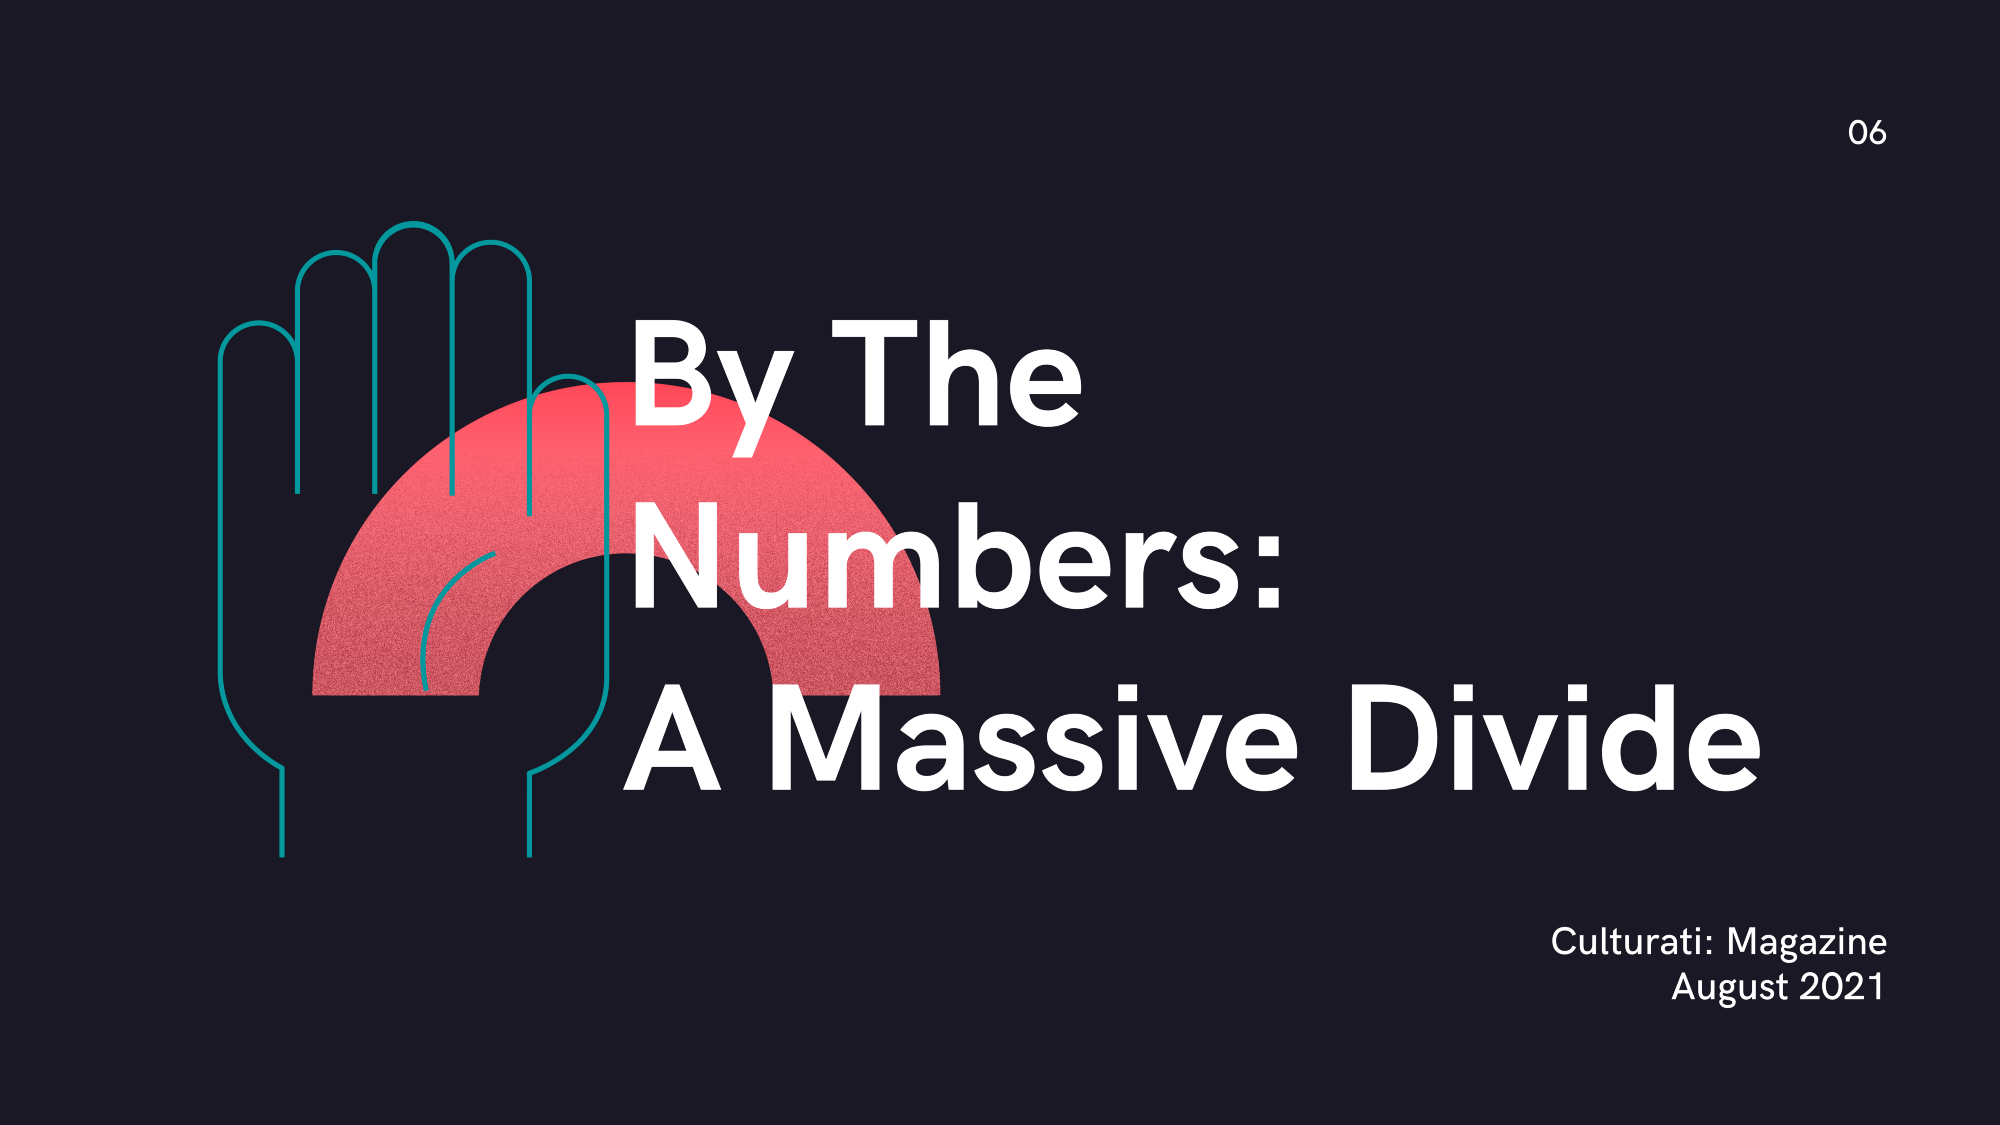 By the Numbers: A Massive Divide